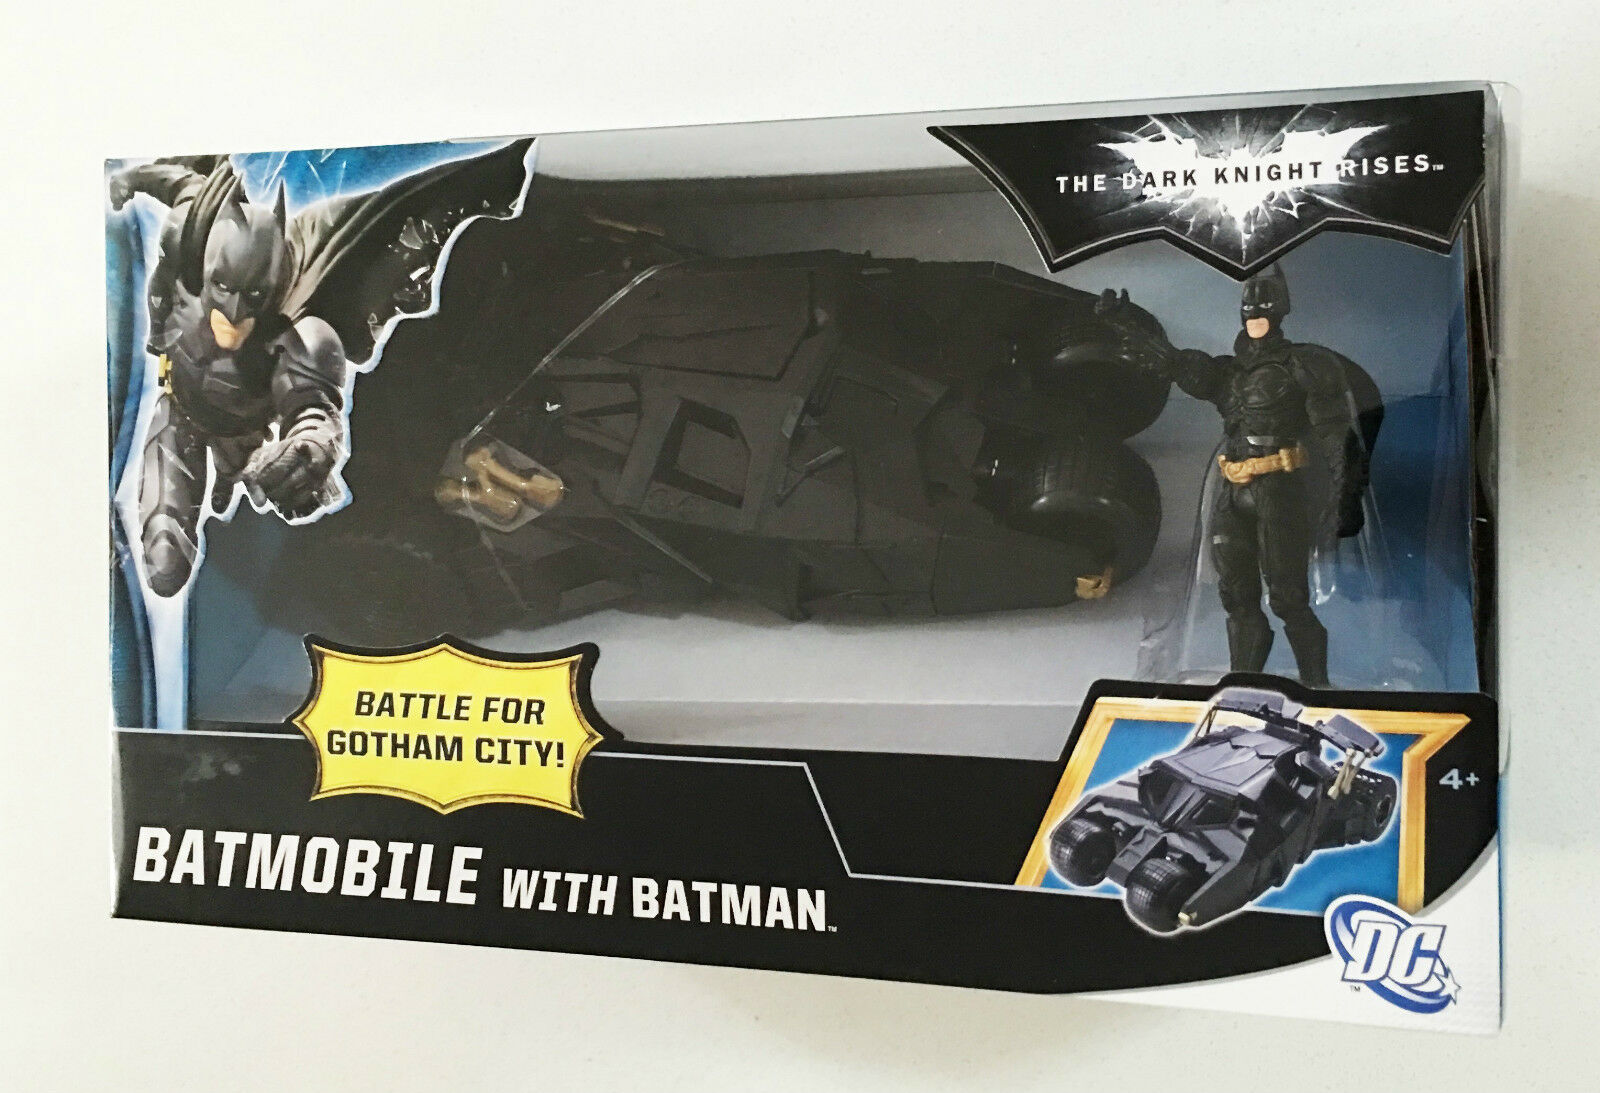 Batman Dark Knight Rises Batmobile Bike Gotham City Tumbler Ages 4+ Car Mattel